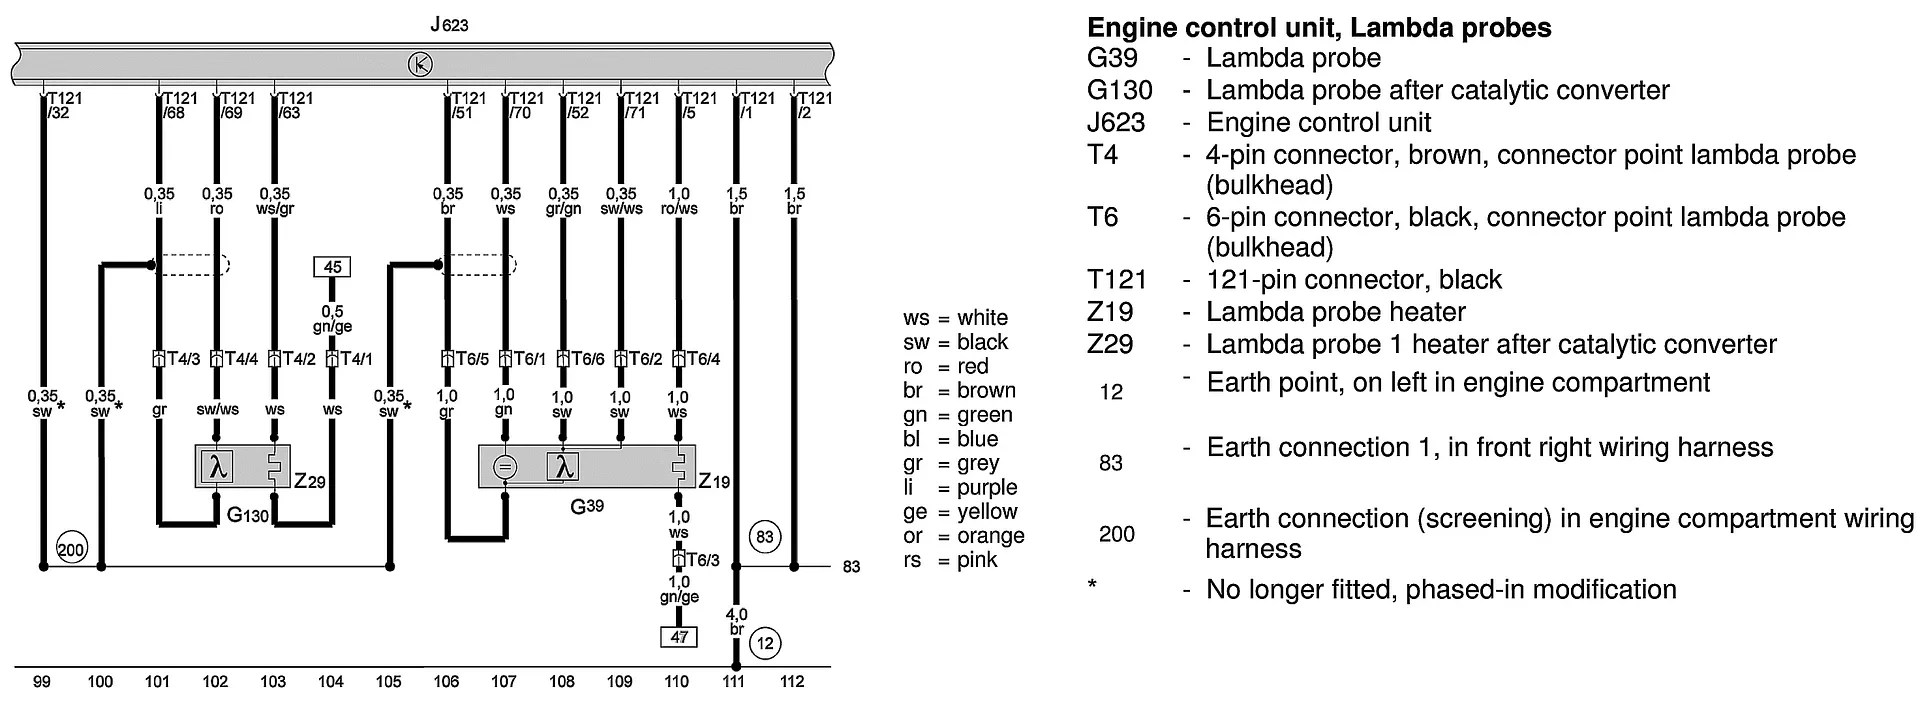 Help! electrical diagram of O2 sensors to ECU needed for